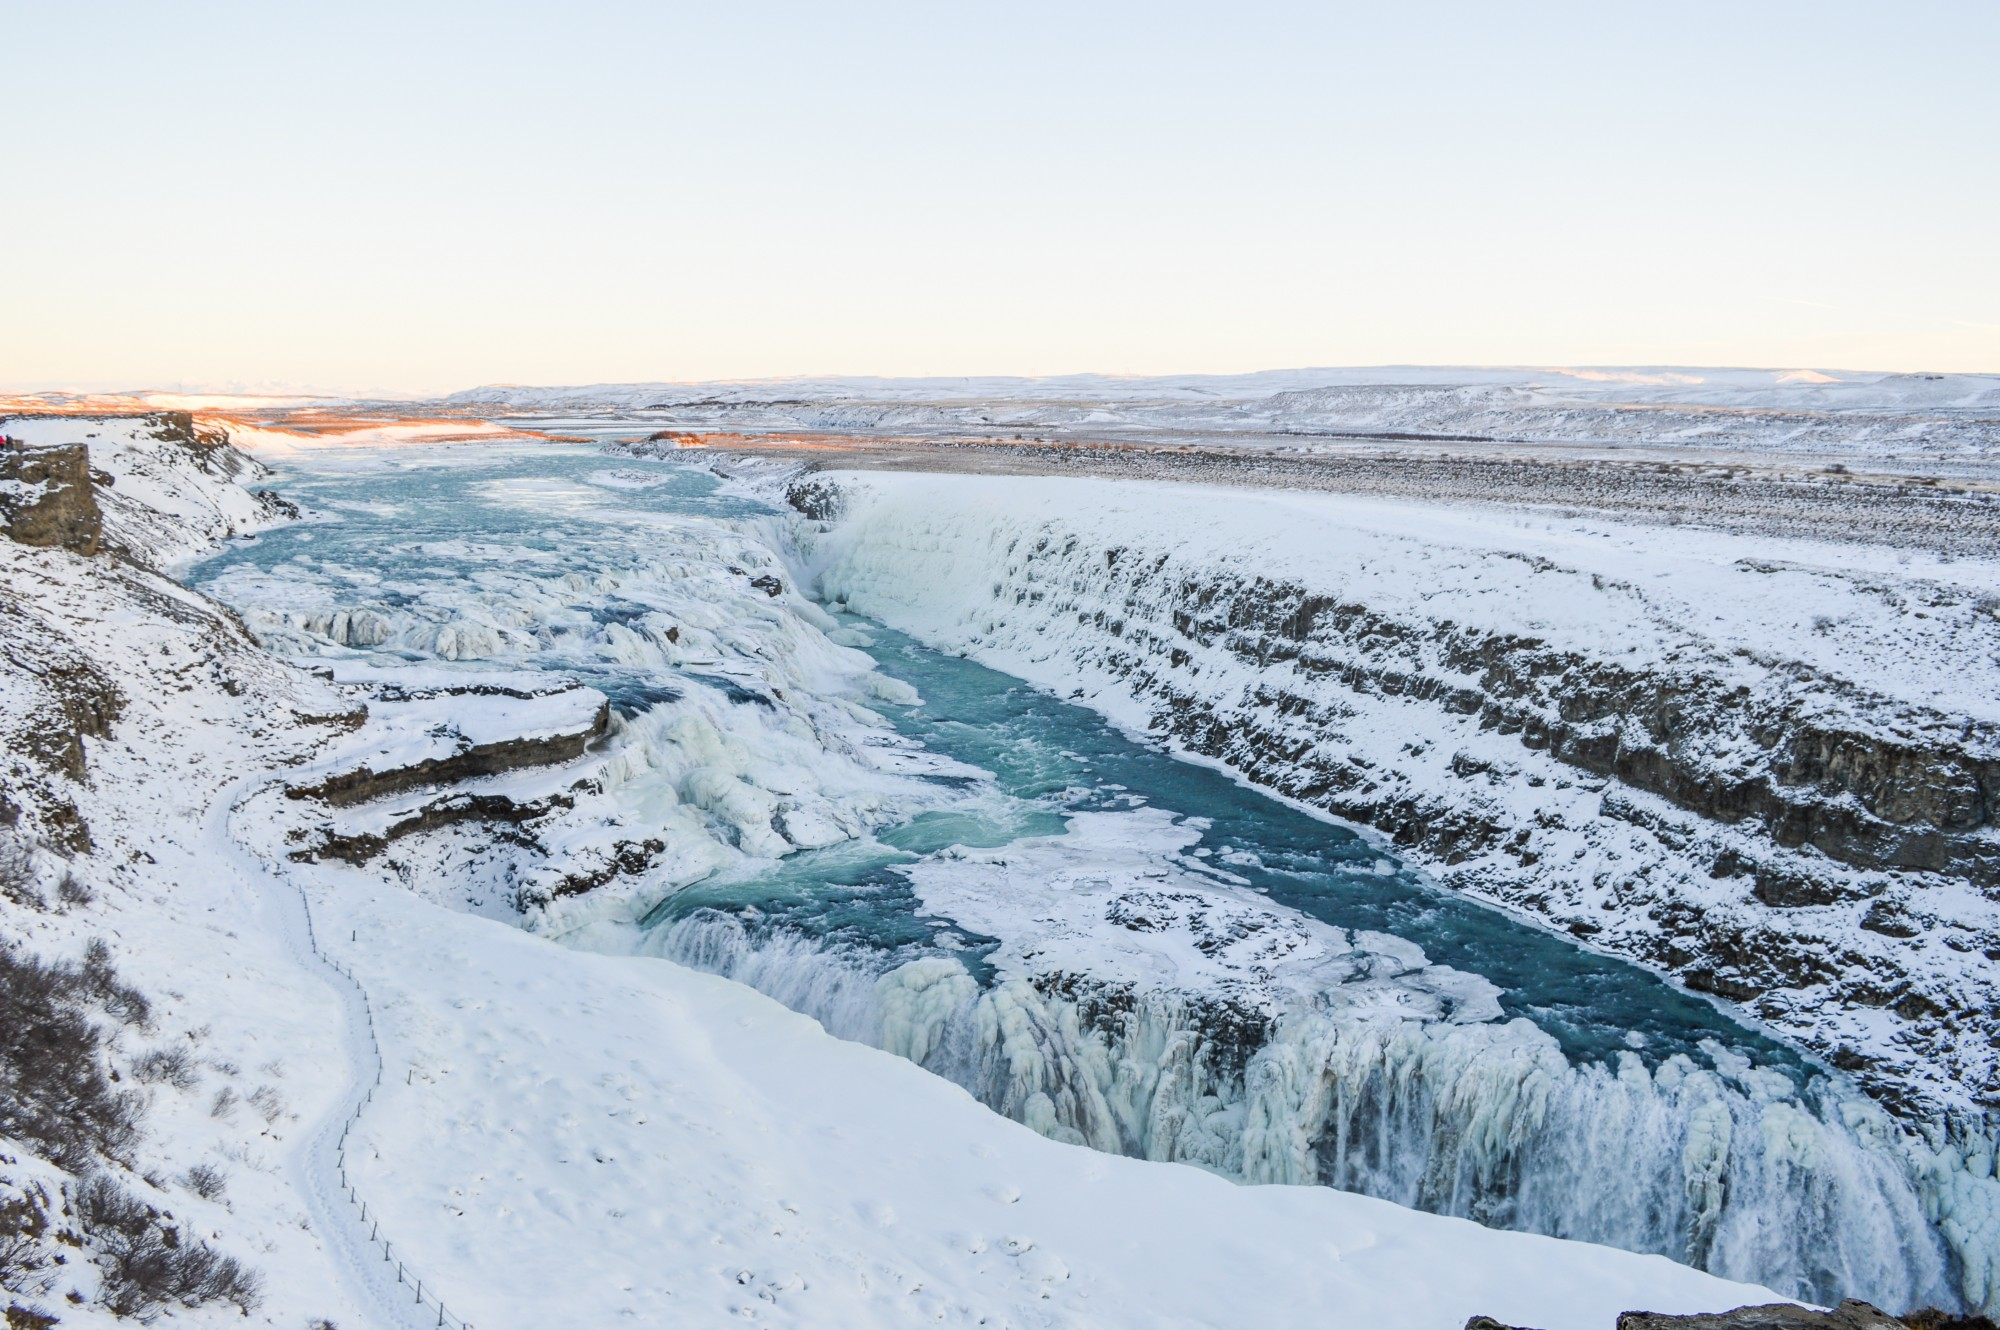 Upper Falls at the Gullfoss Waterfall In Iceland